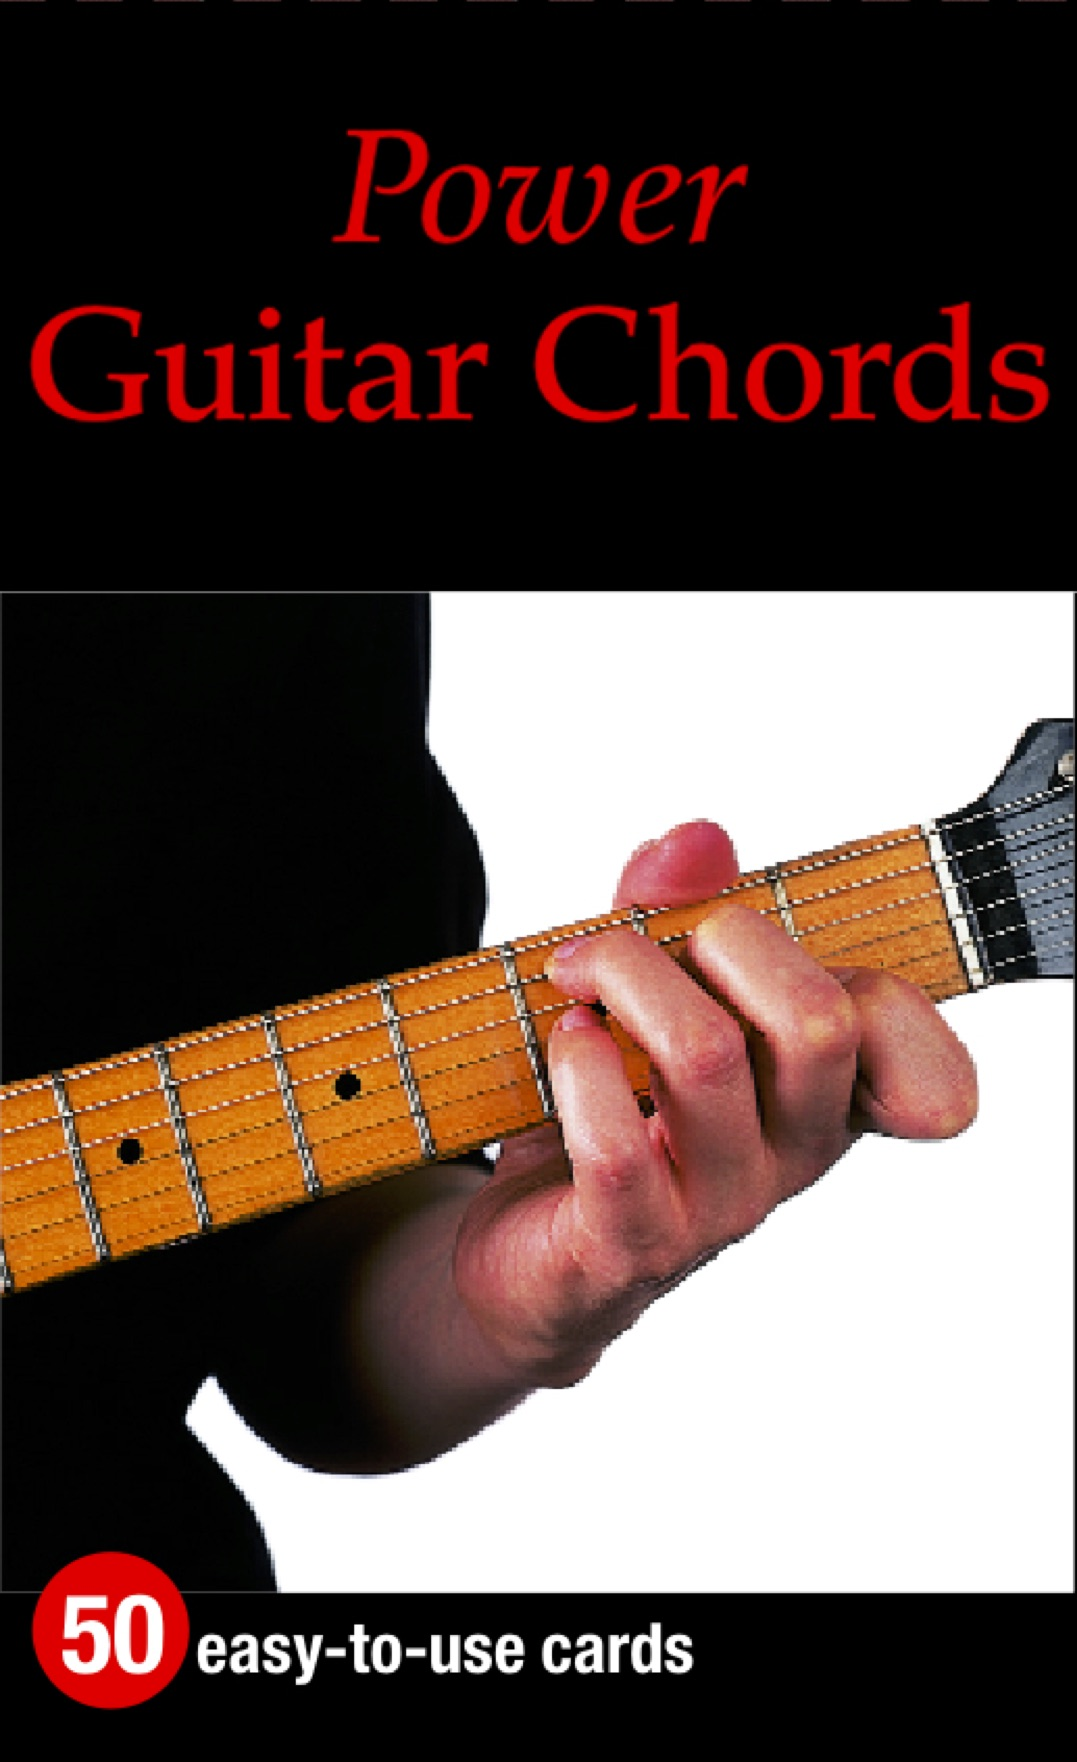 Power Guitar Chords